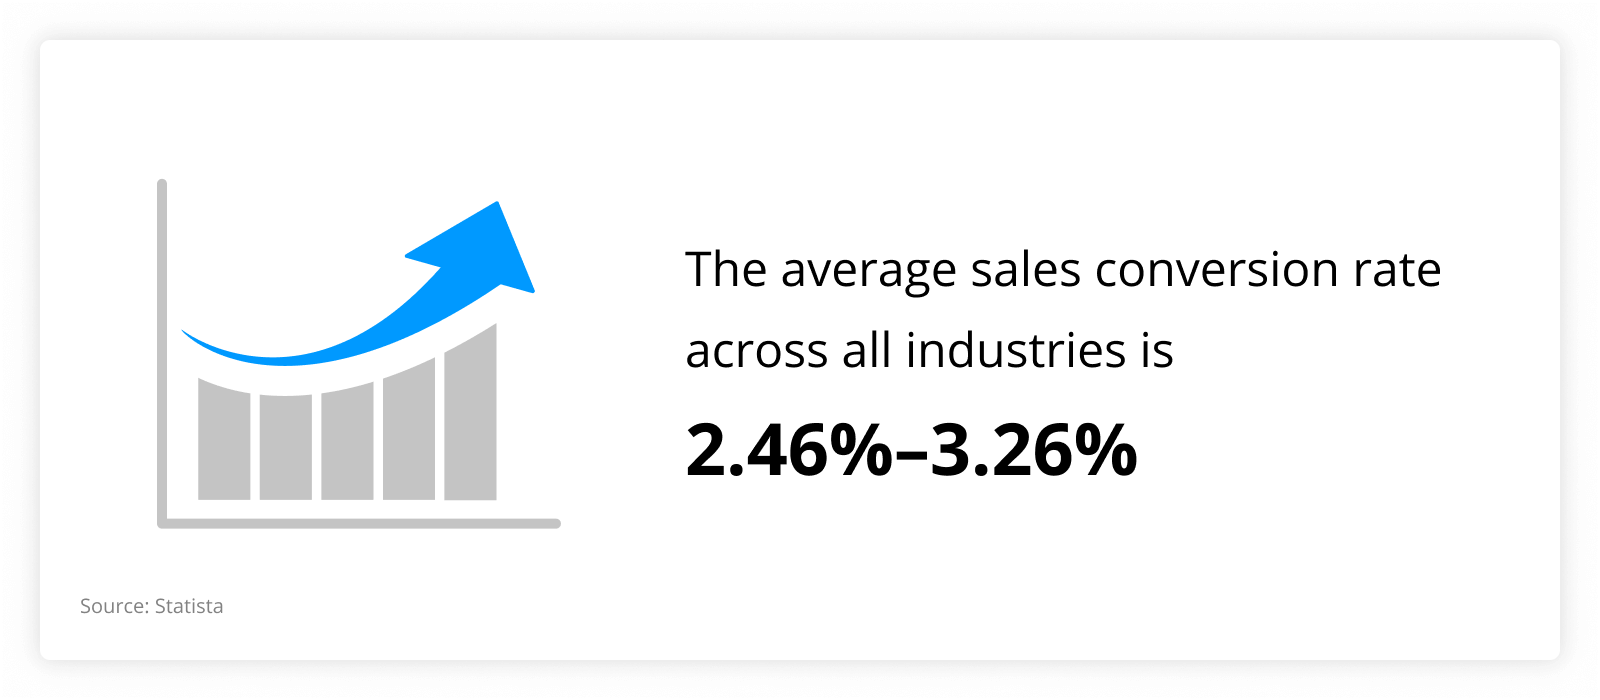 graph showing that The average sales conversion rate across all industries is 2.46%–3.26%